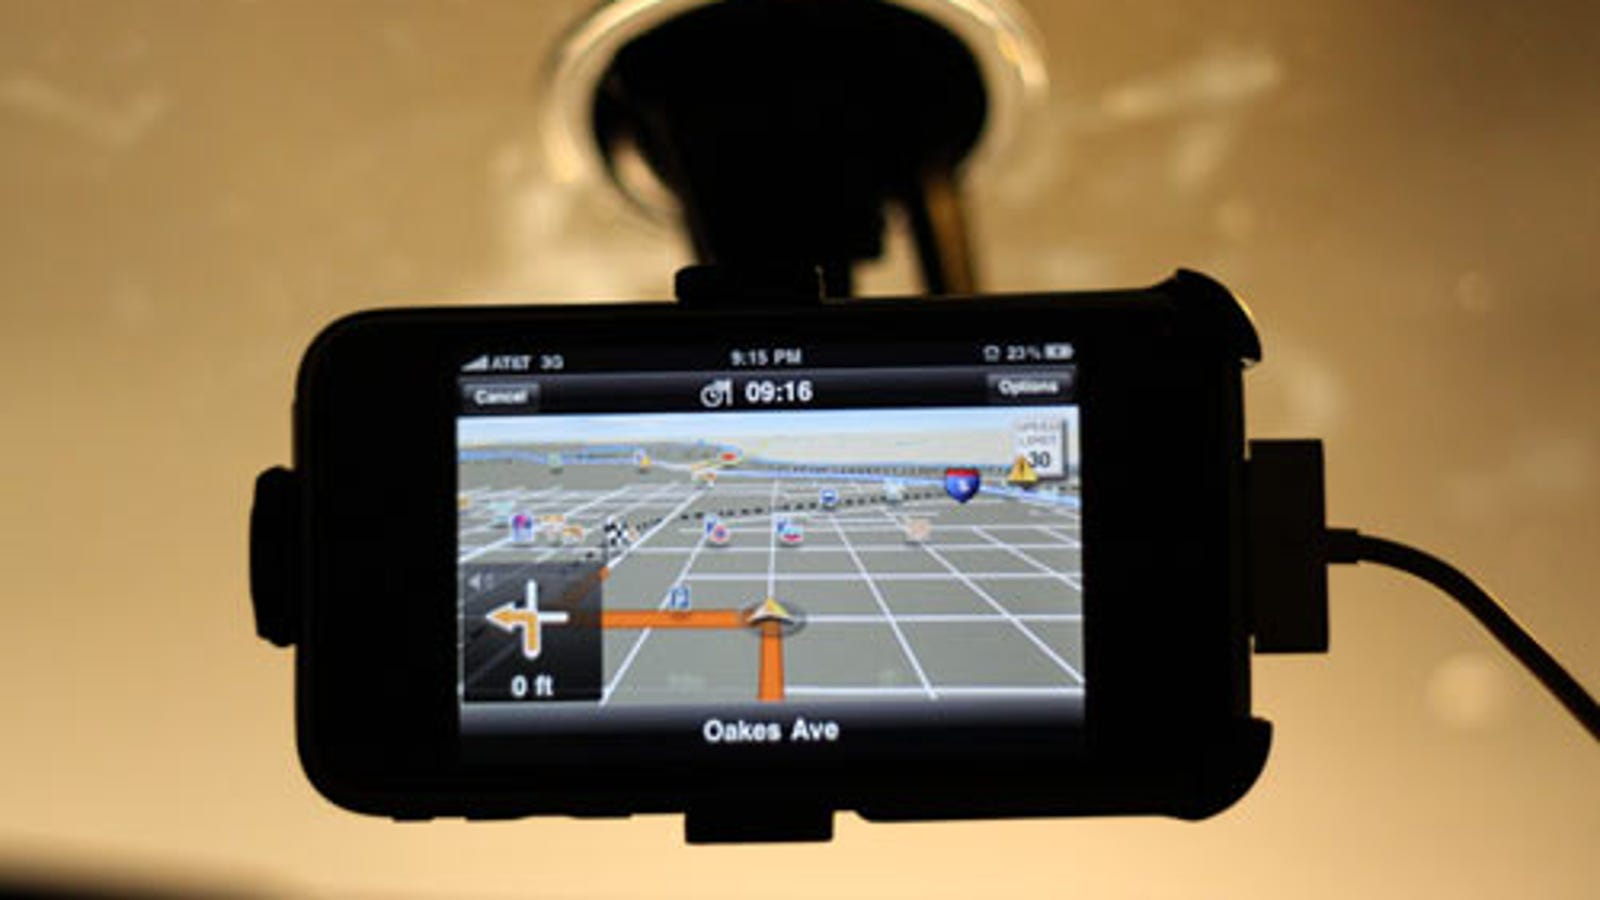 Iphone navigon vs tomtom